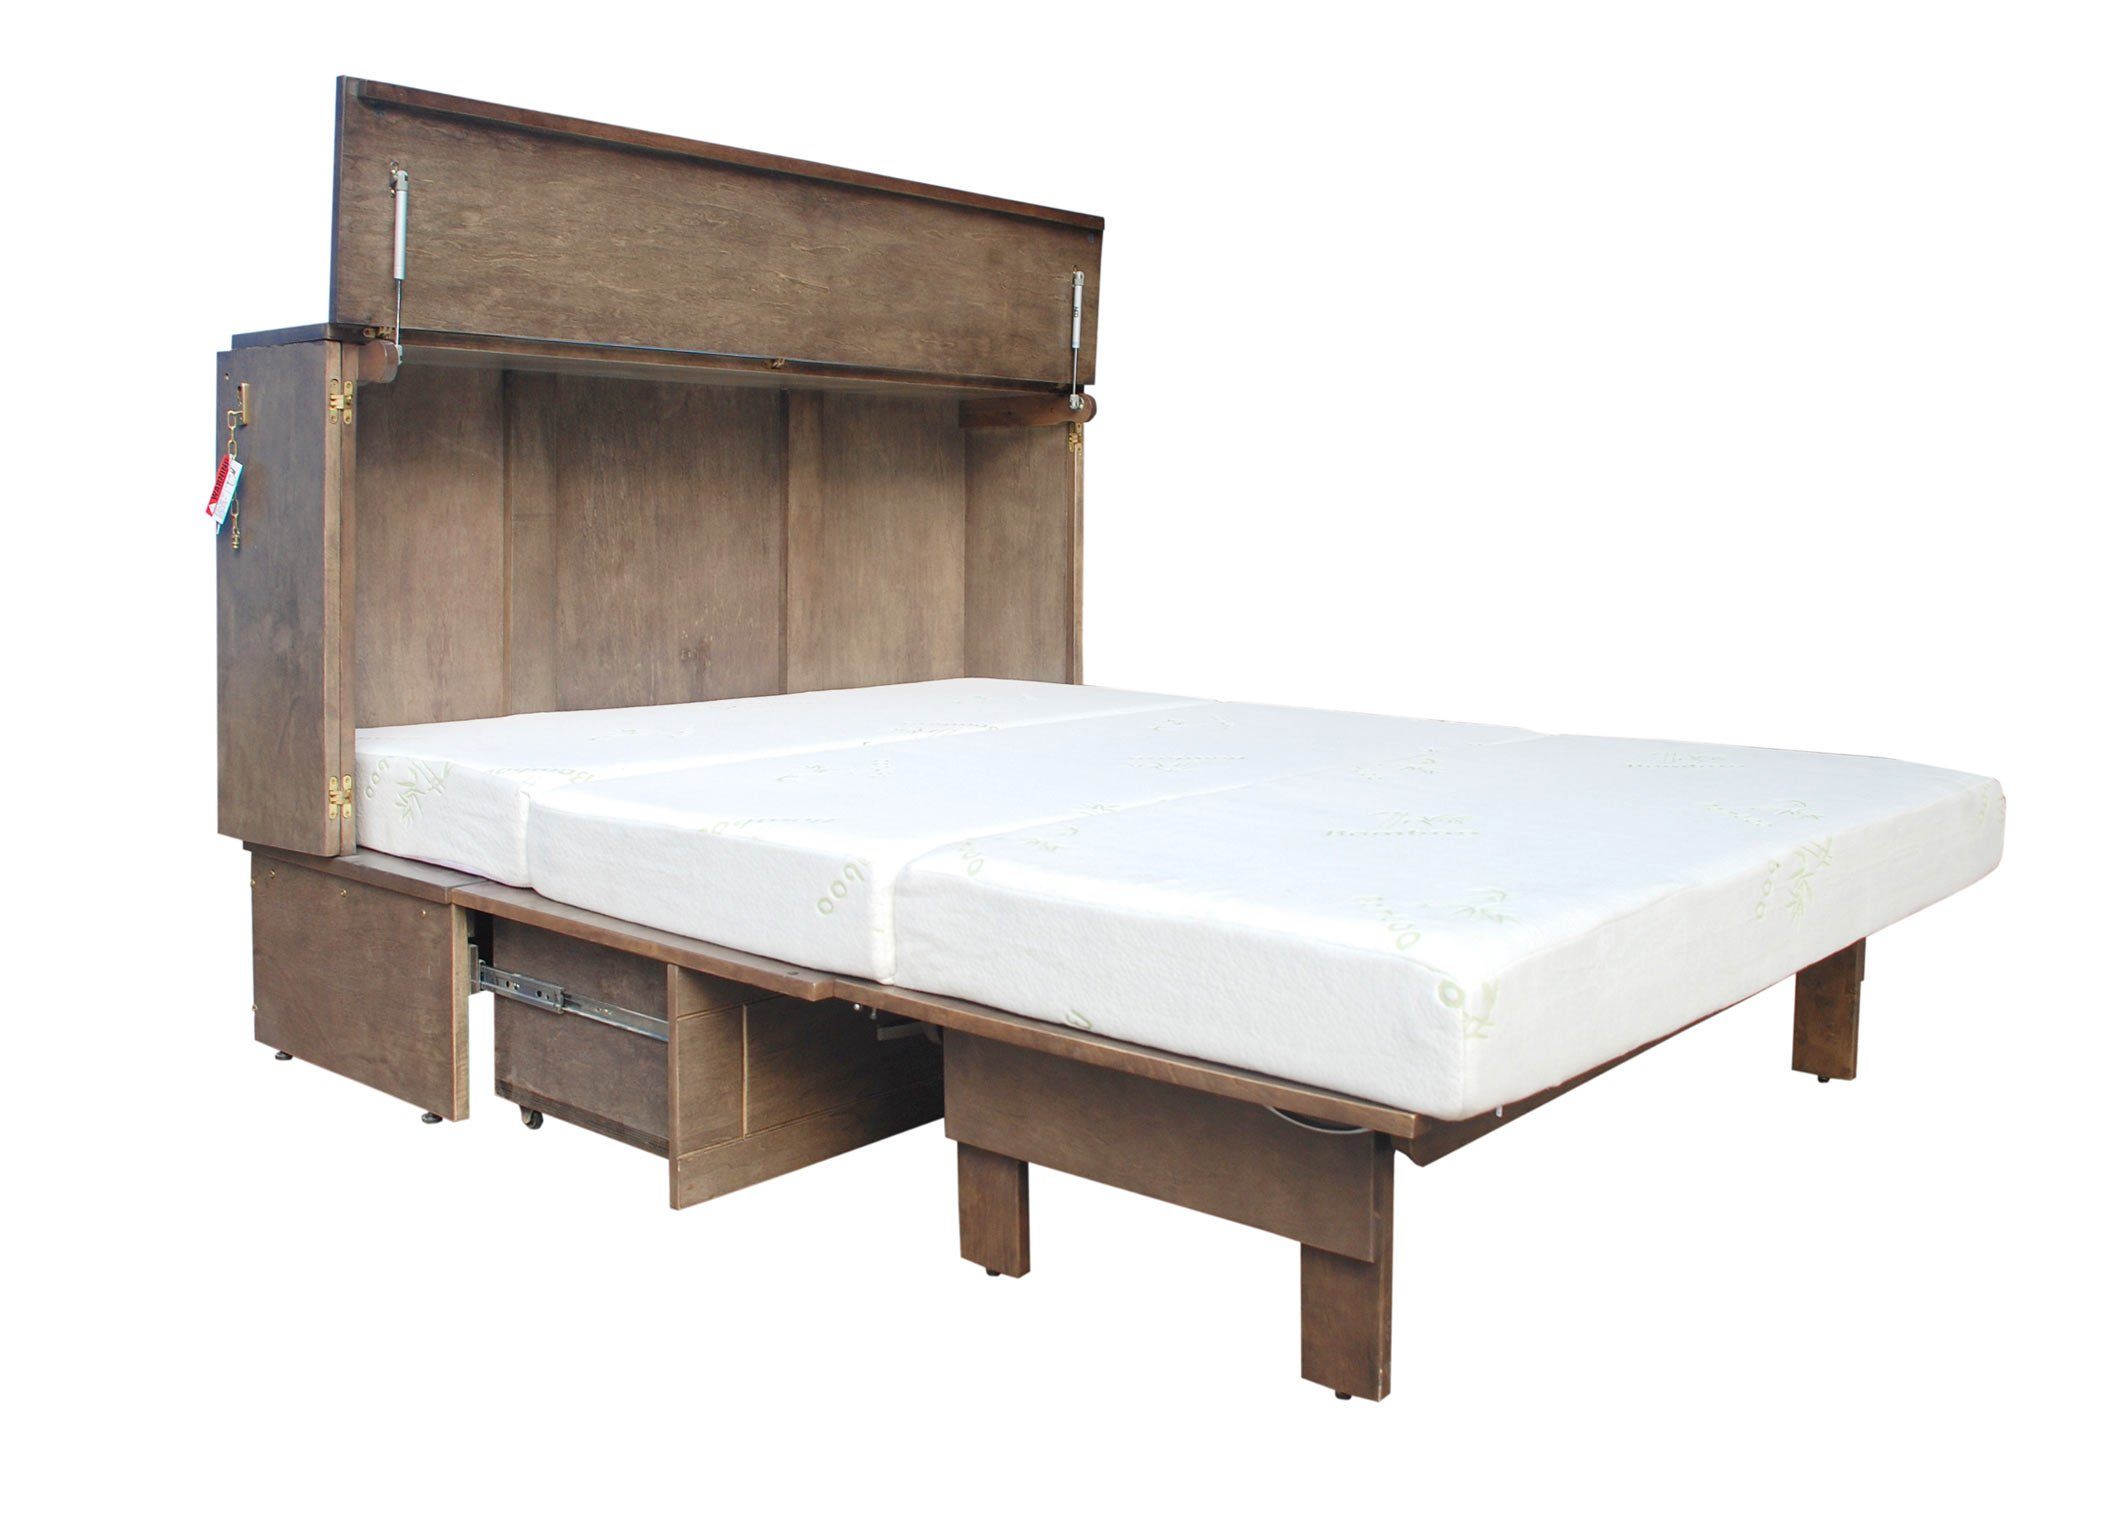 by new cabinet queen bed page category name chain murphy index product winmark id yorker traders